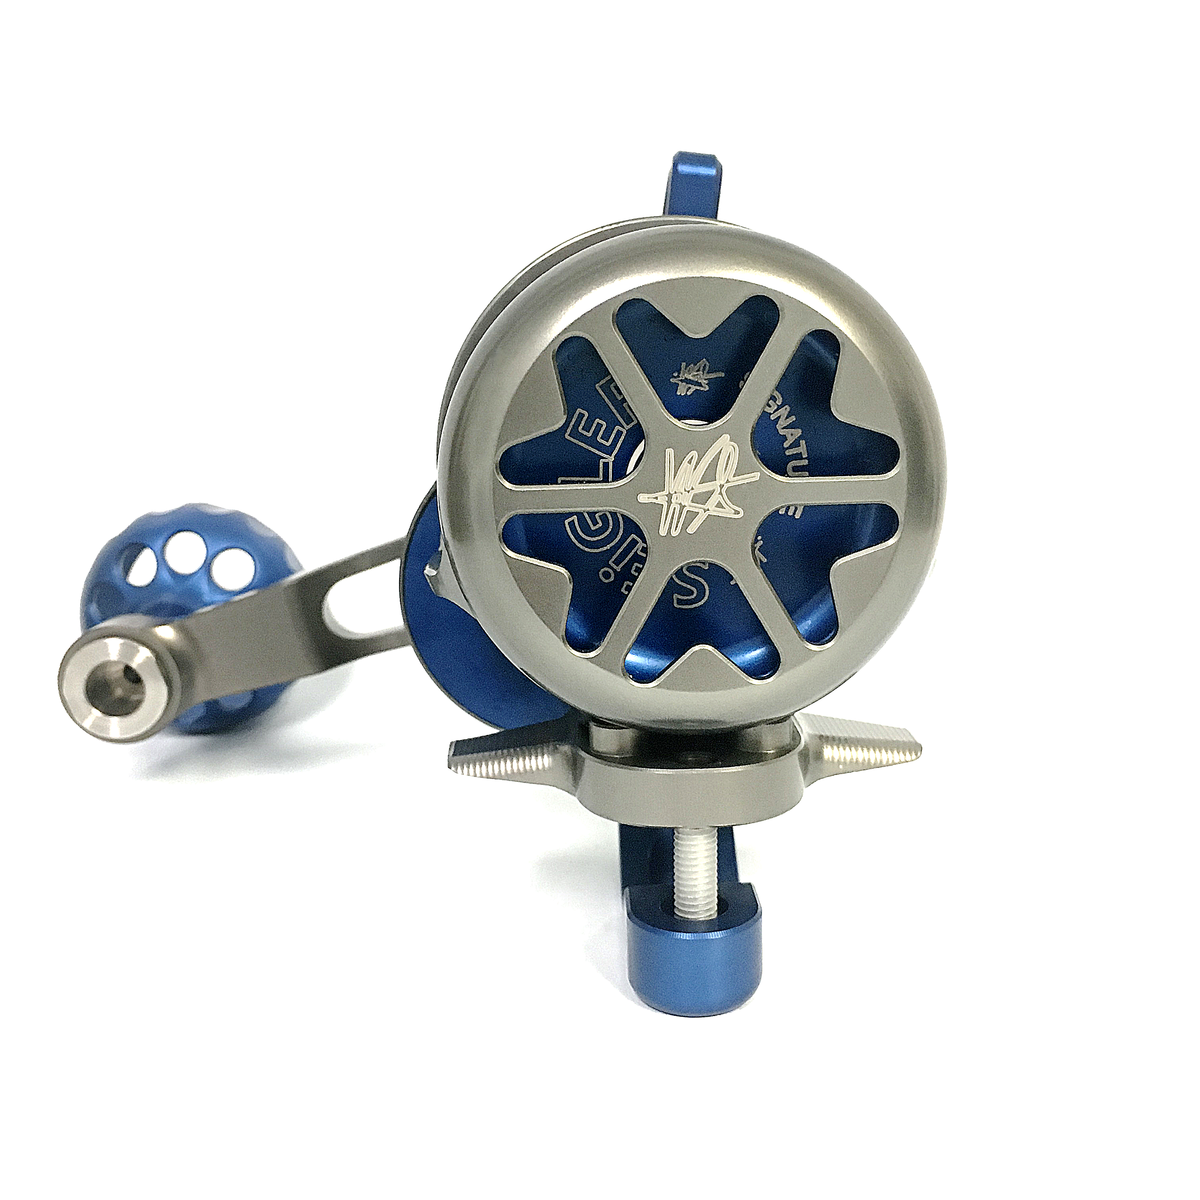 LIGHTEST LEVER DRAG FISHING REEL